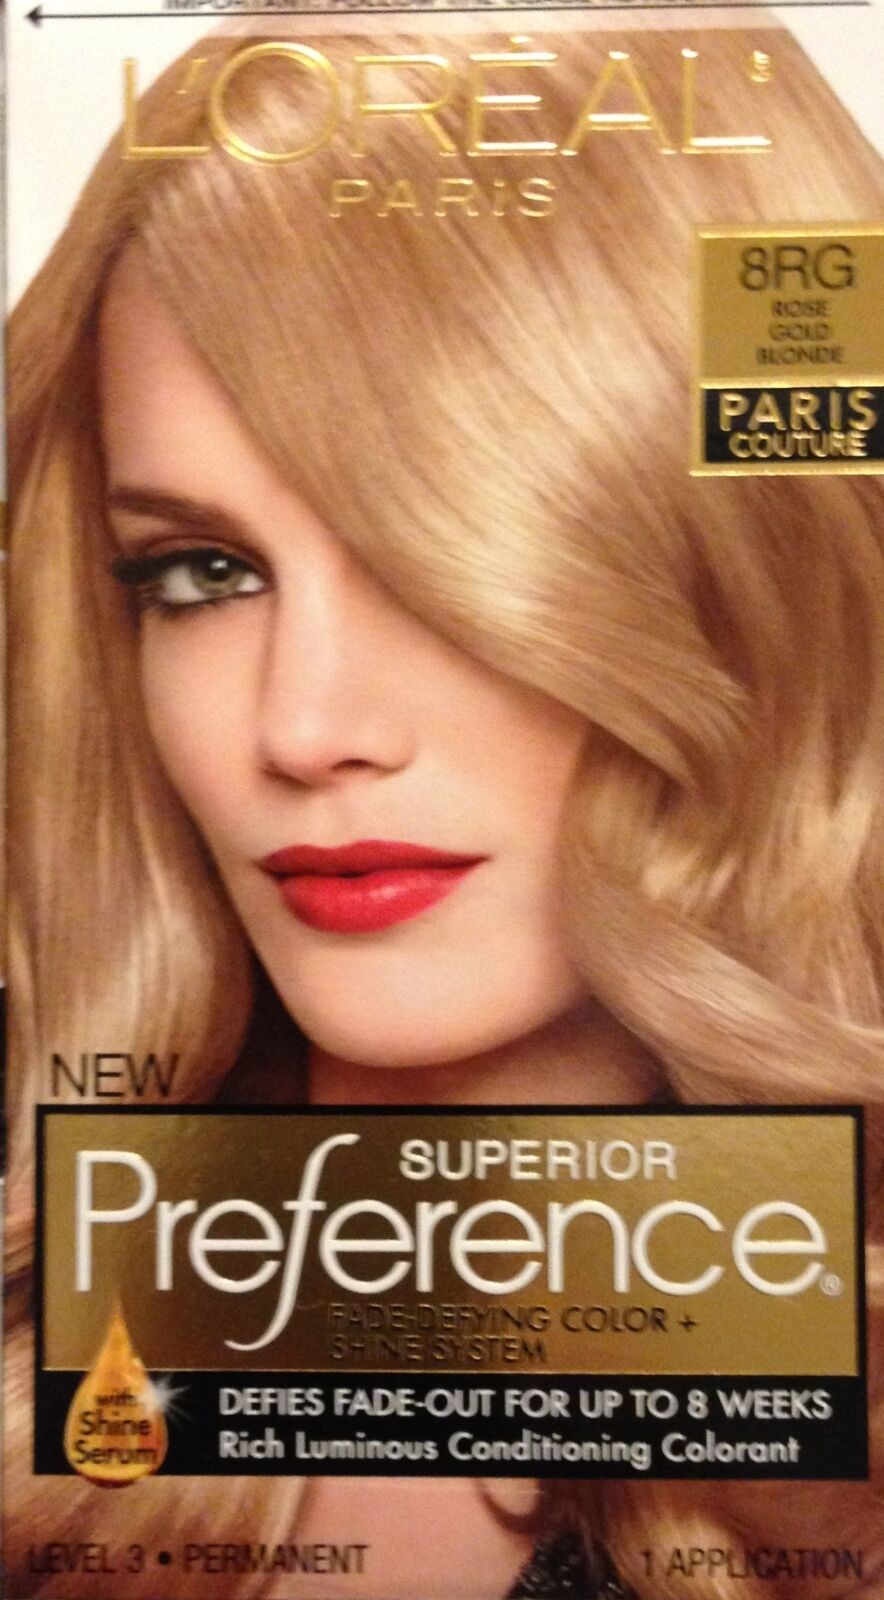 Loreal Superior Preference Paris Couture Hair Color 8rg Rose Gold